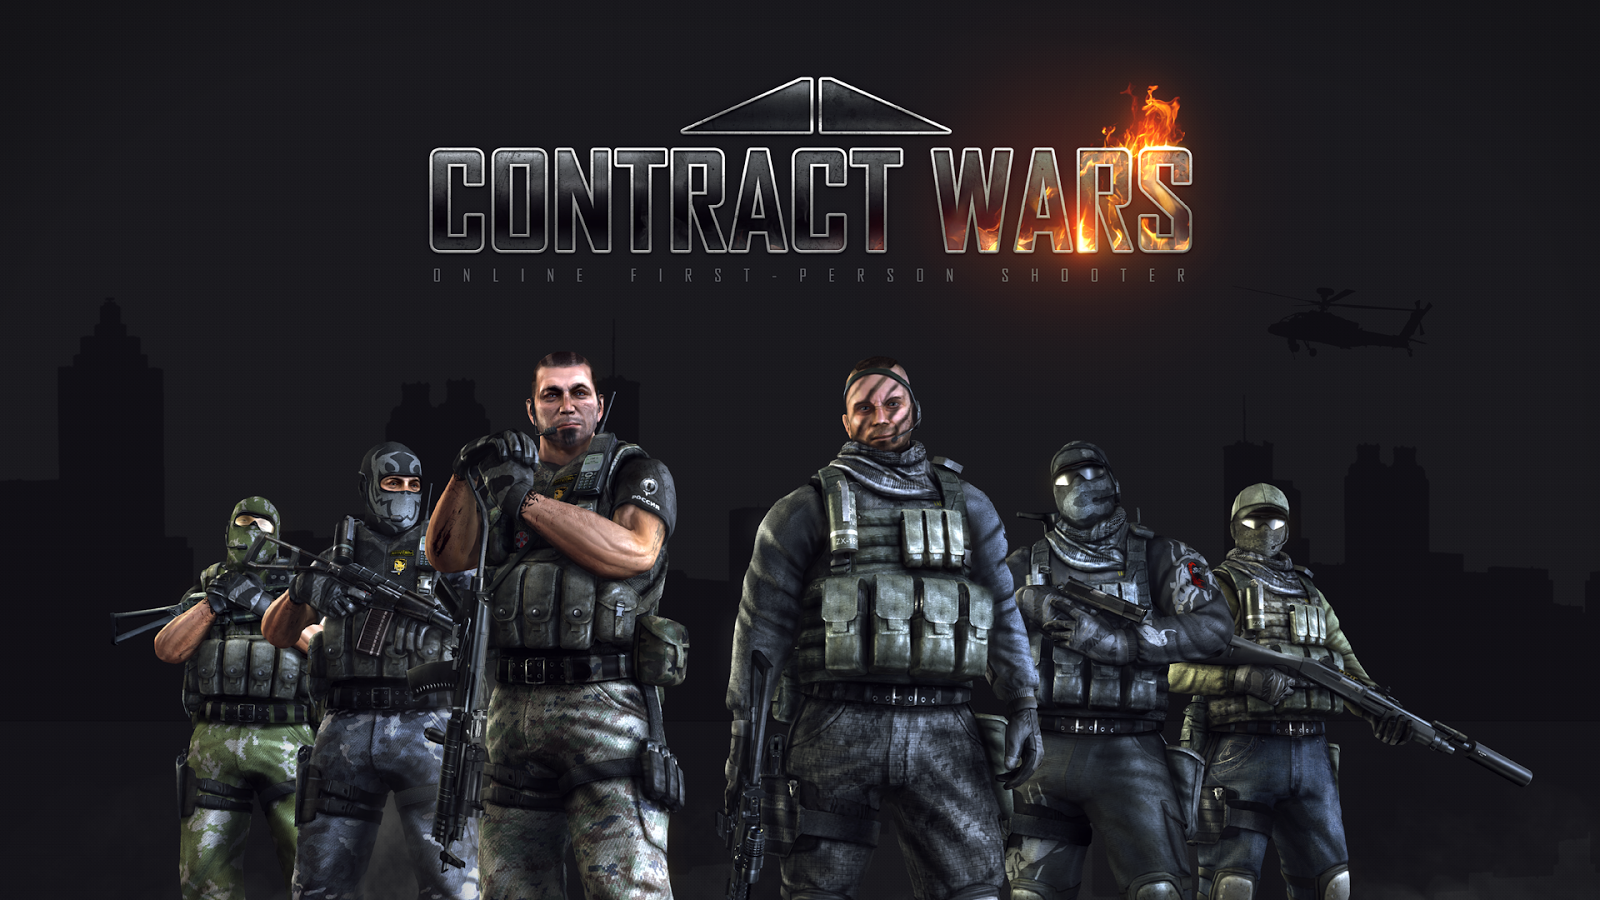 Contract Wars Cheat - 4 in 1 Hack Update October 18 CheatHax SoftwareSyndicate